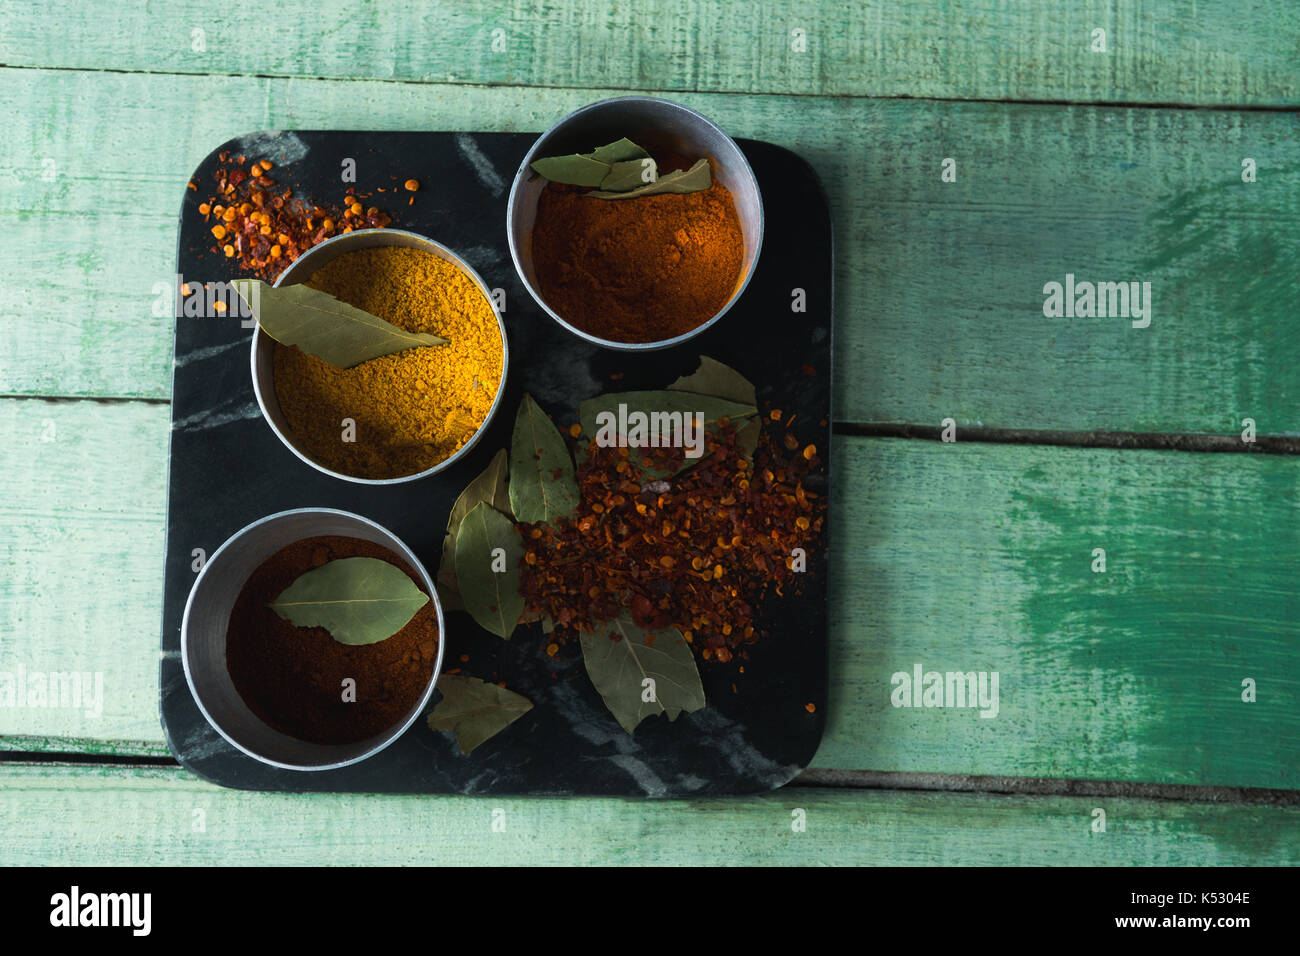 Close-up of various type spices on bowl - Stock Image